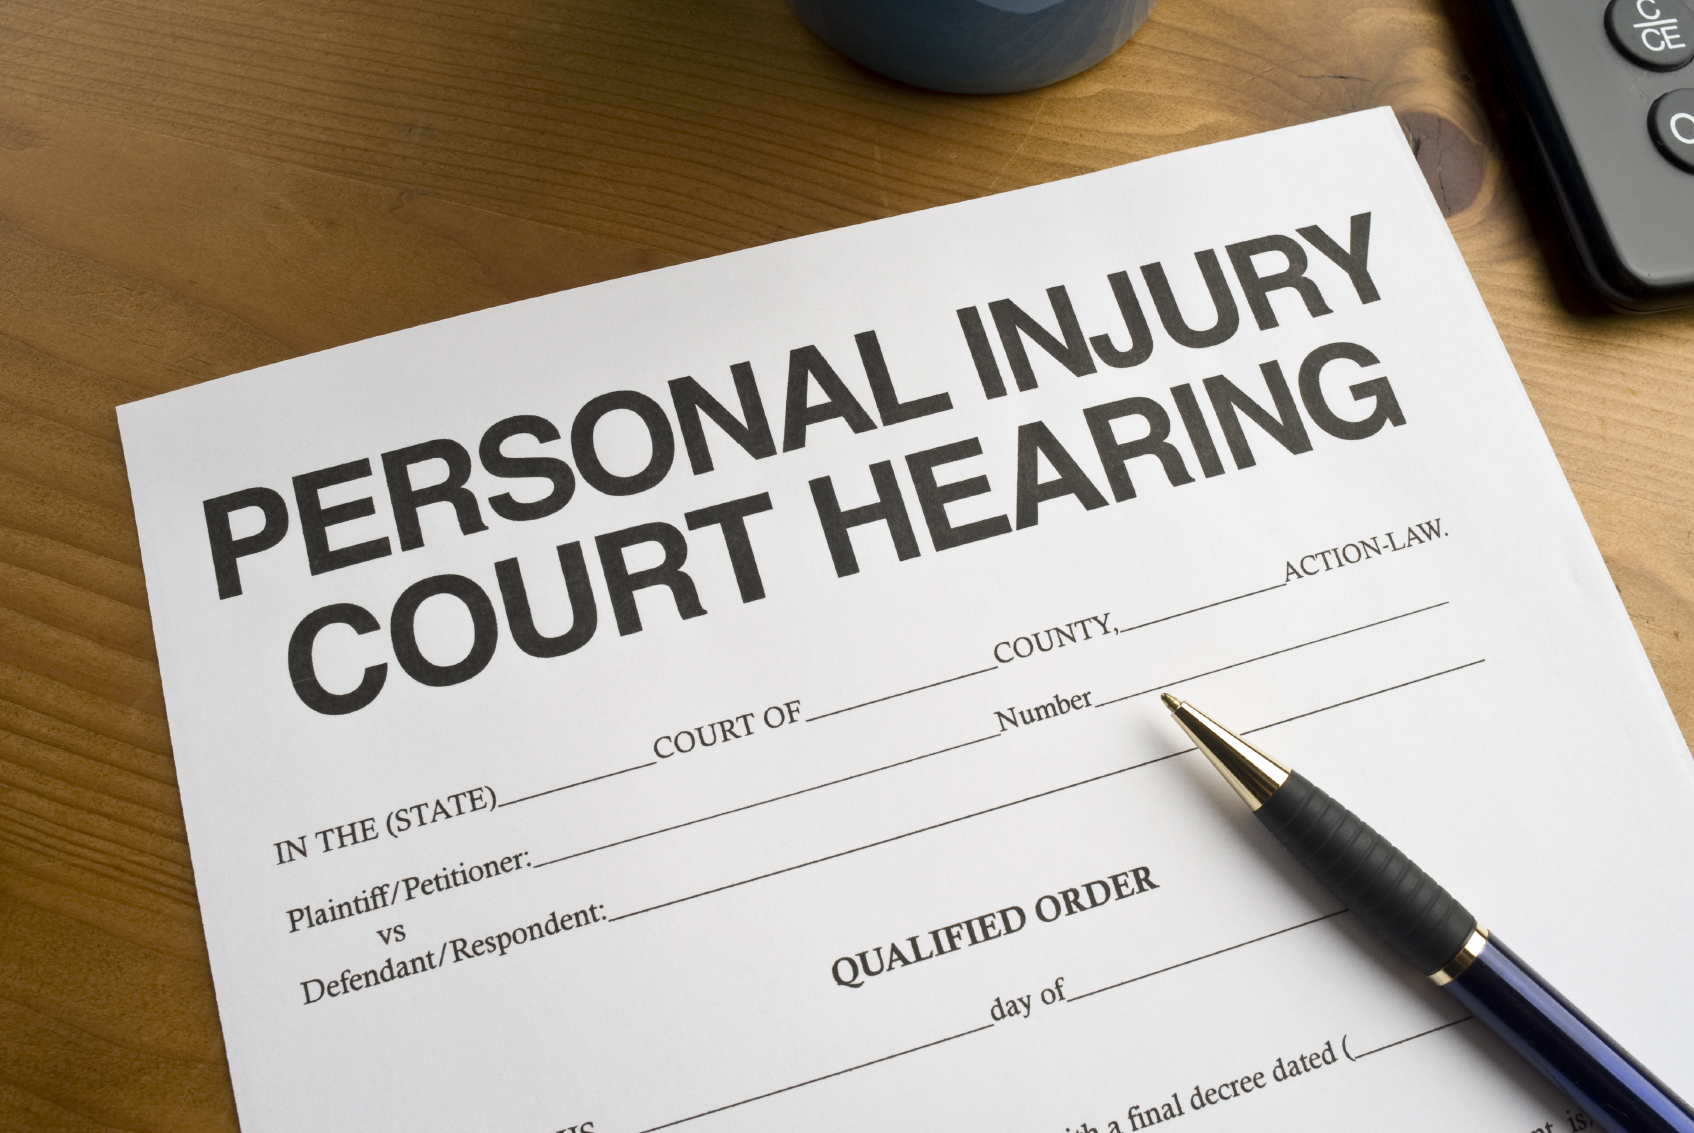 Silver Spring personal injury lawyers